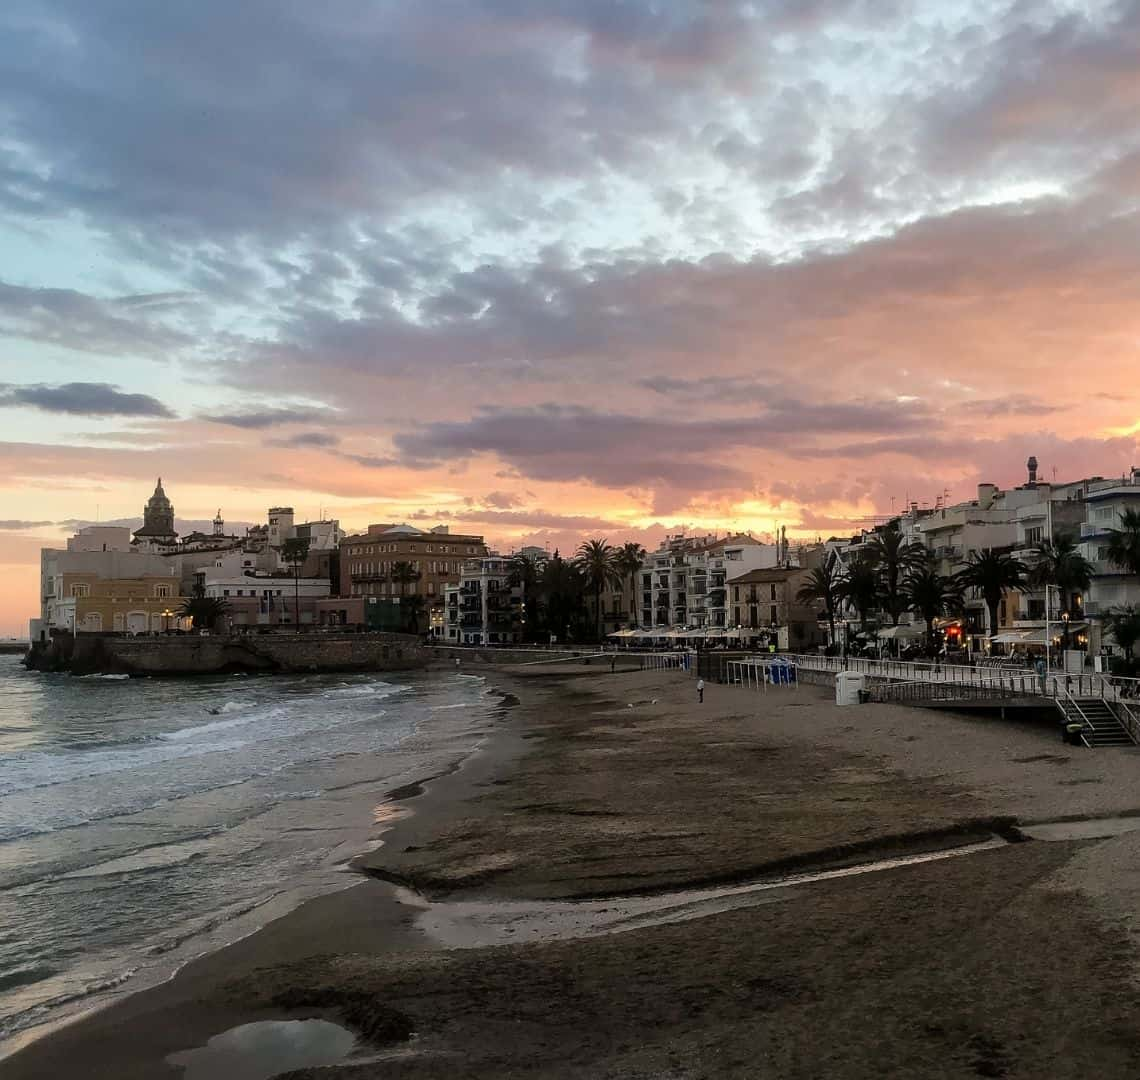 Sitges Beach has dark sand taking up around one half of the bottom of the photo. The sea, on the left, has gentle waves with white foam contrasting against the dark waters. On the right are the white paving stones of the promenade and a white railing, behind which some shops and restaurants are just opening. The headland is in the middle left and shows more old Spanish buildings. The sky is a myriad of pastels with the brightest yellow, but still muted, where the sun had been. There are some clouds in teh sky which is turning a deeper blue at the top of the image.